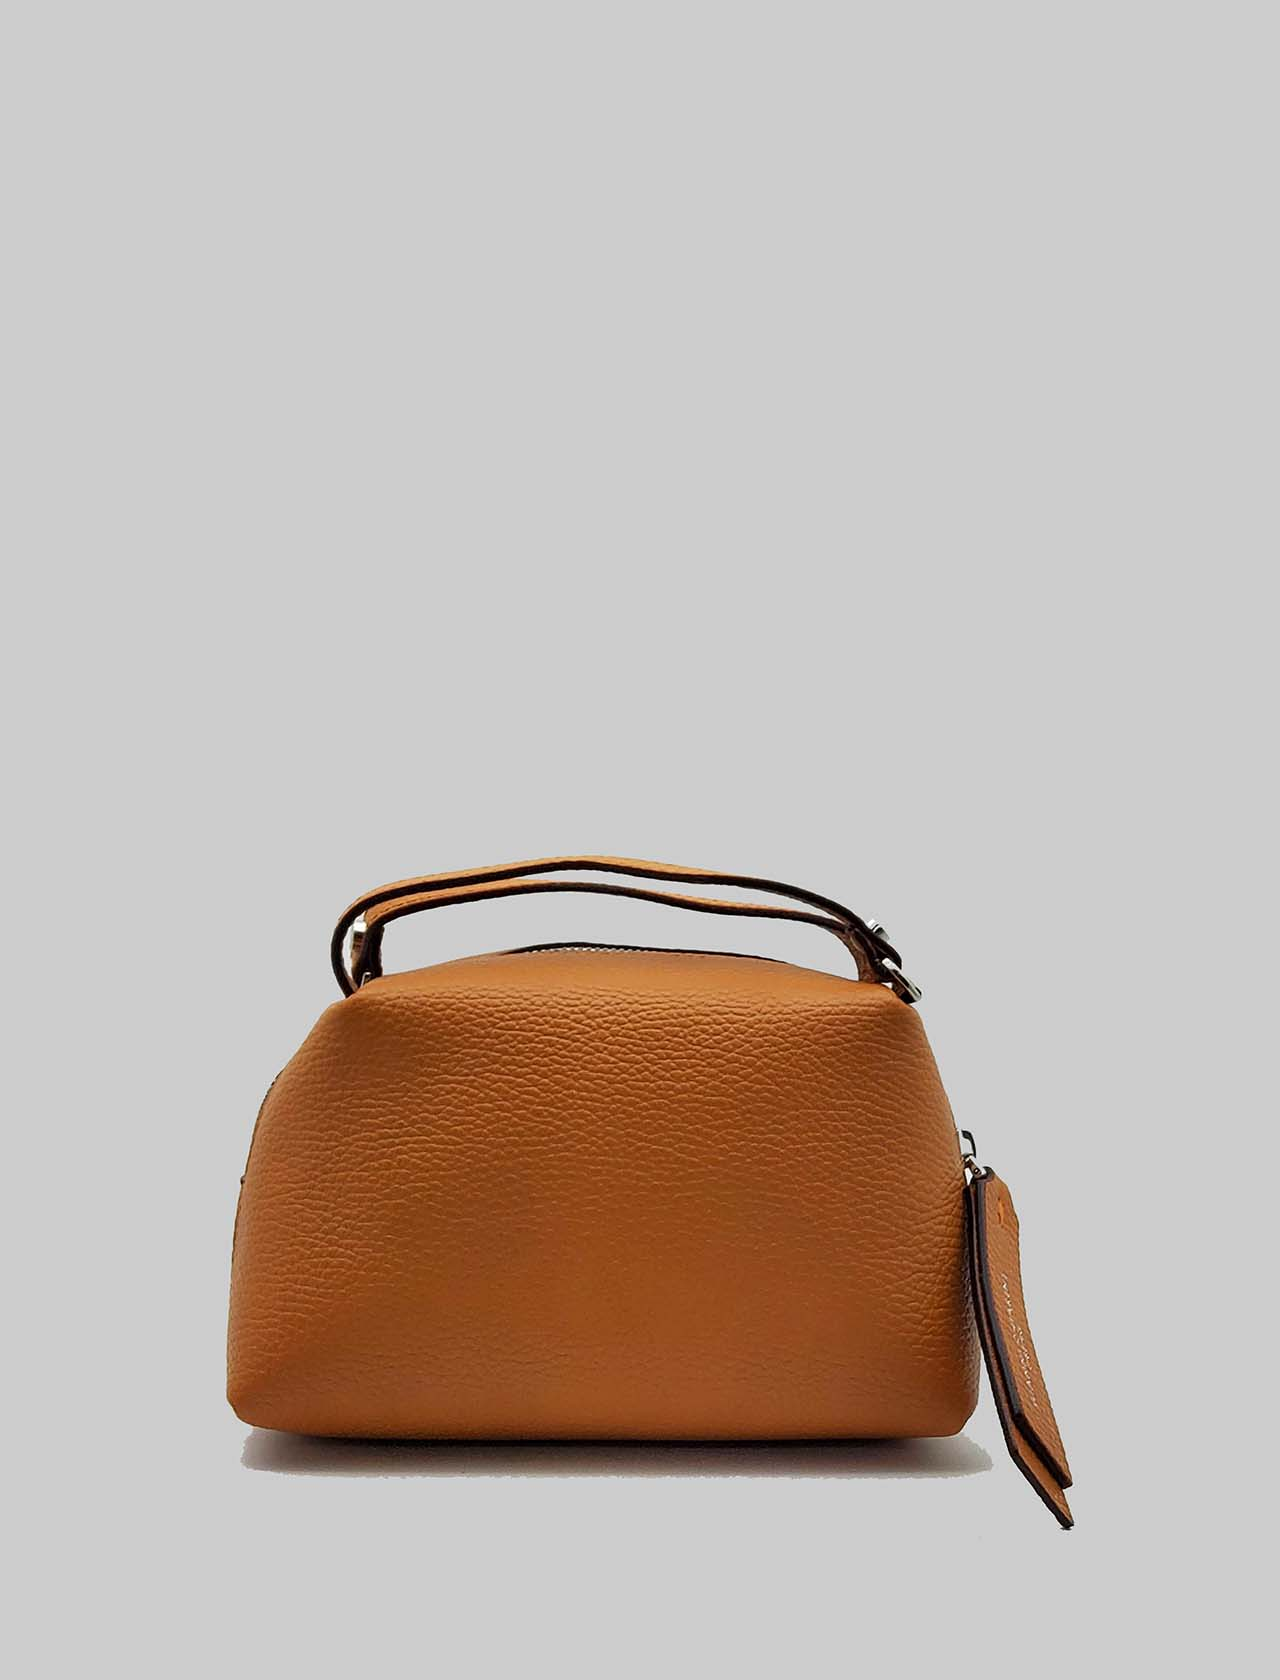 Small Alifa Woman Bag in Tan Leather with Double Hand Handle and Removable Shoulder Strap Gianni Chiarini | Bags and backpacks | BS814511041